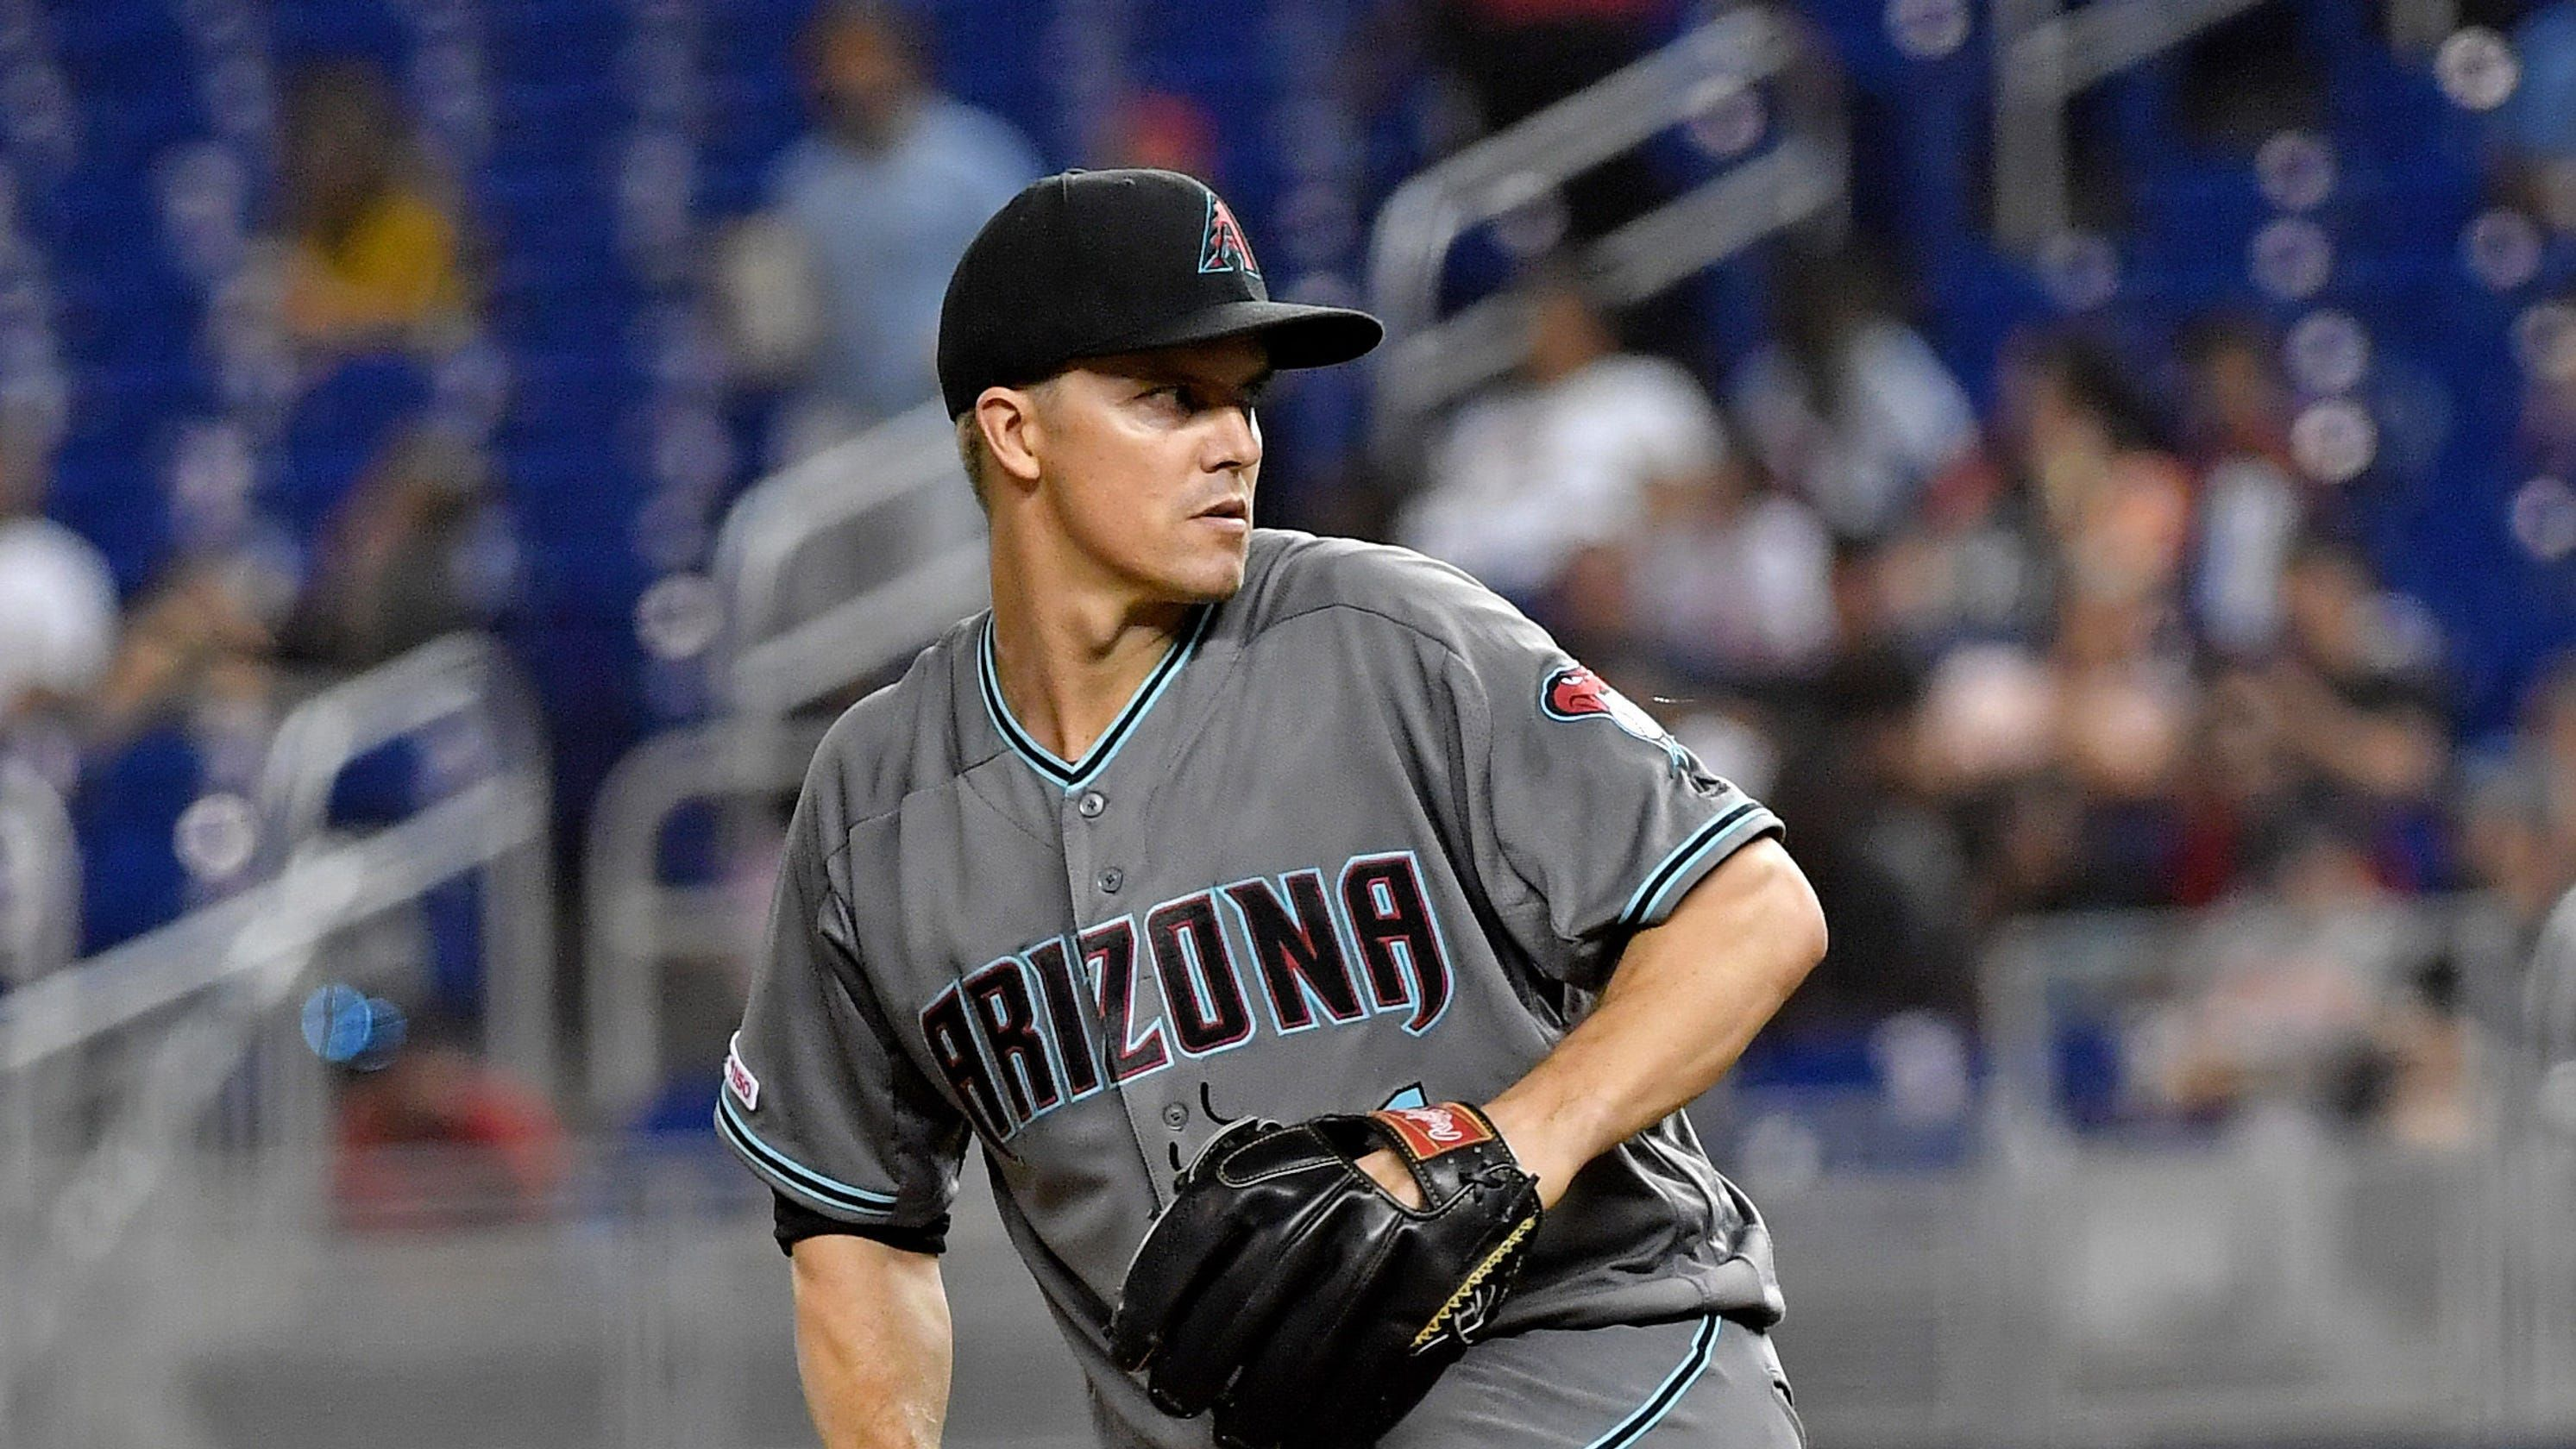 Mlb Trade Deadline Tracker A Look Back At How The Day Unfolded Mlb Looking Back Tracker